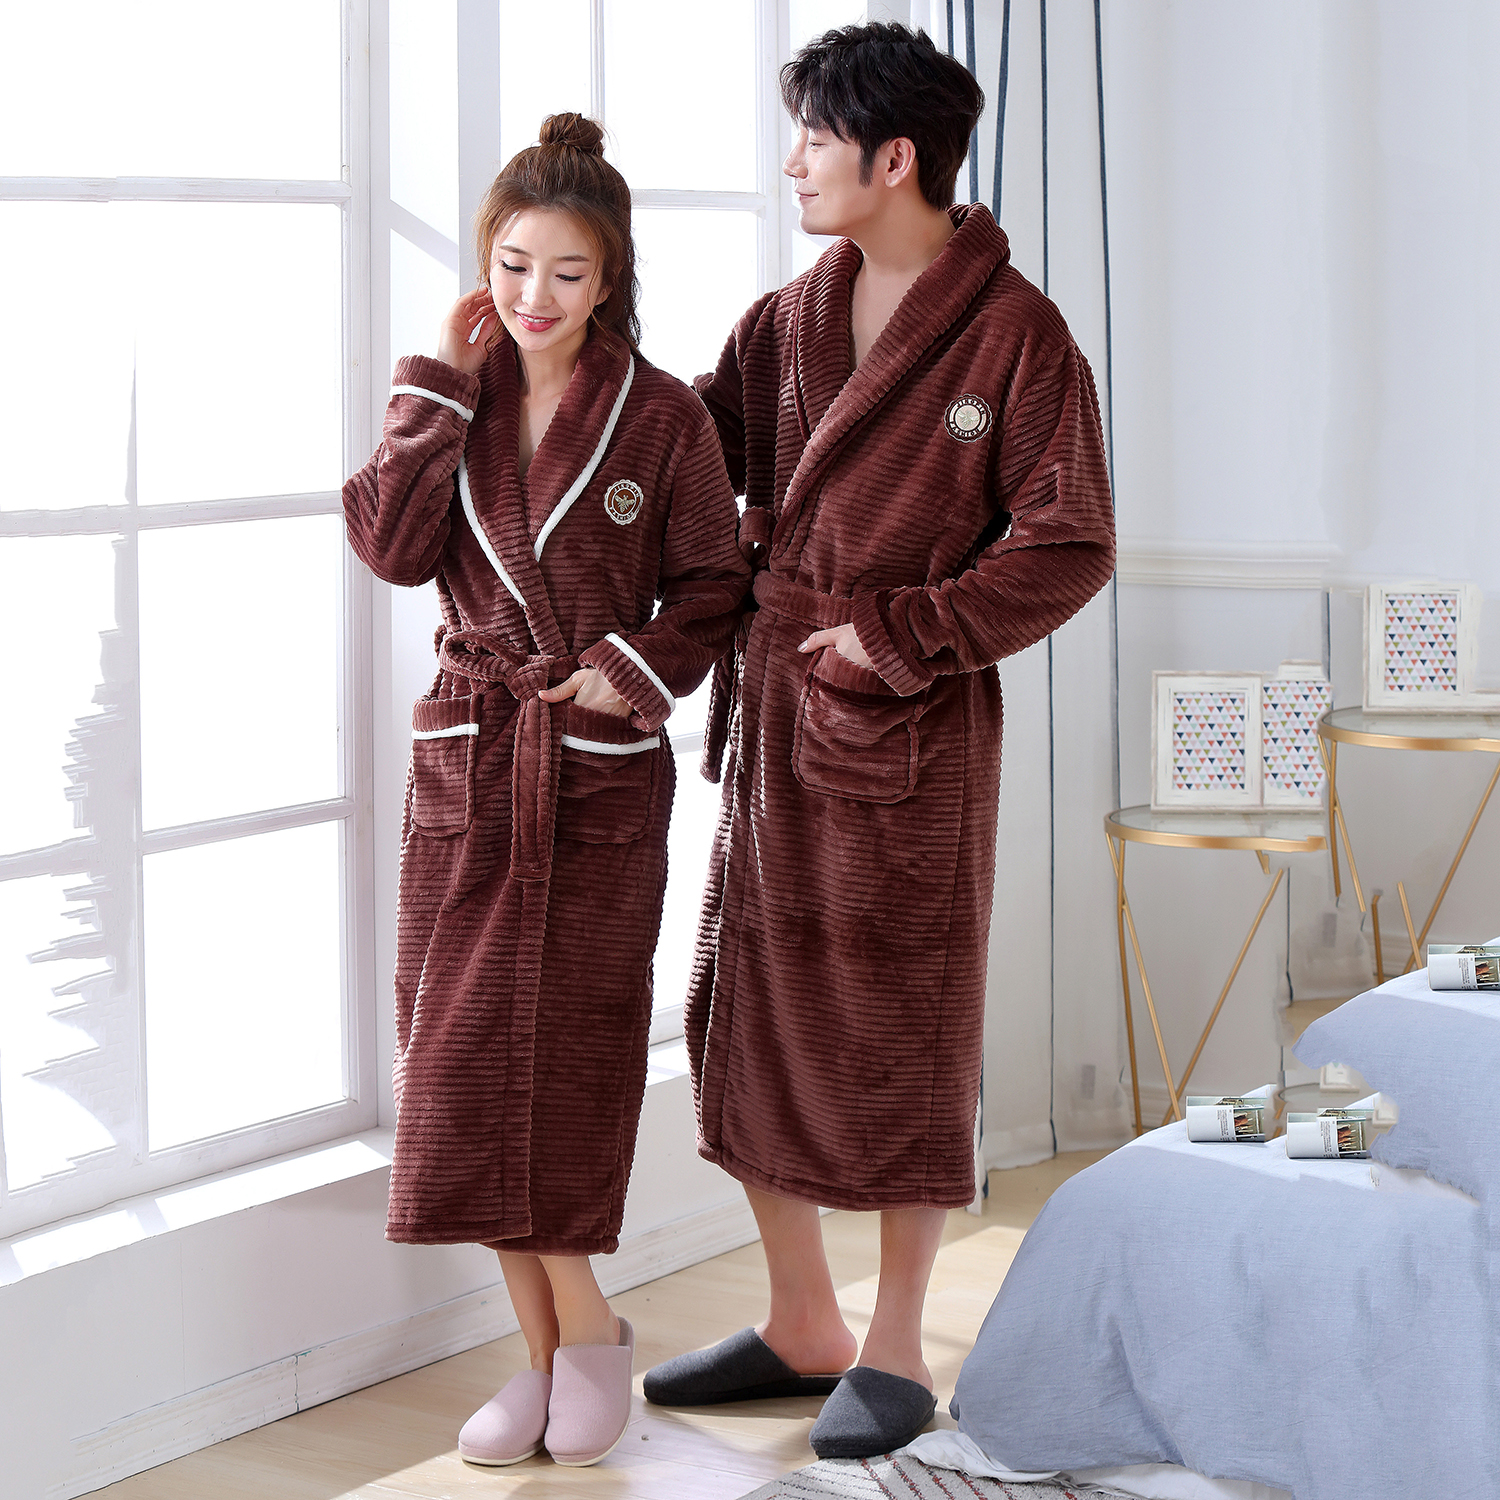 Plus Size 3XL Brown Couple Sleepwear Robe Gown Sleepwear Nightgown Full Sleeve Intimate Lingerie Solid Colour Home Dressing Gown